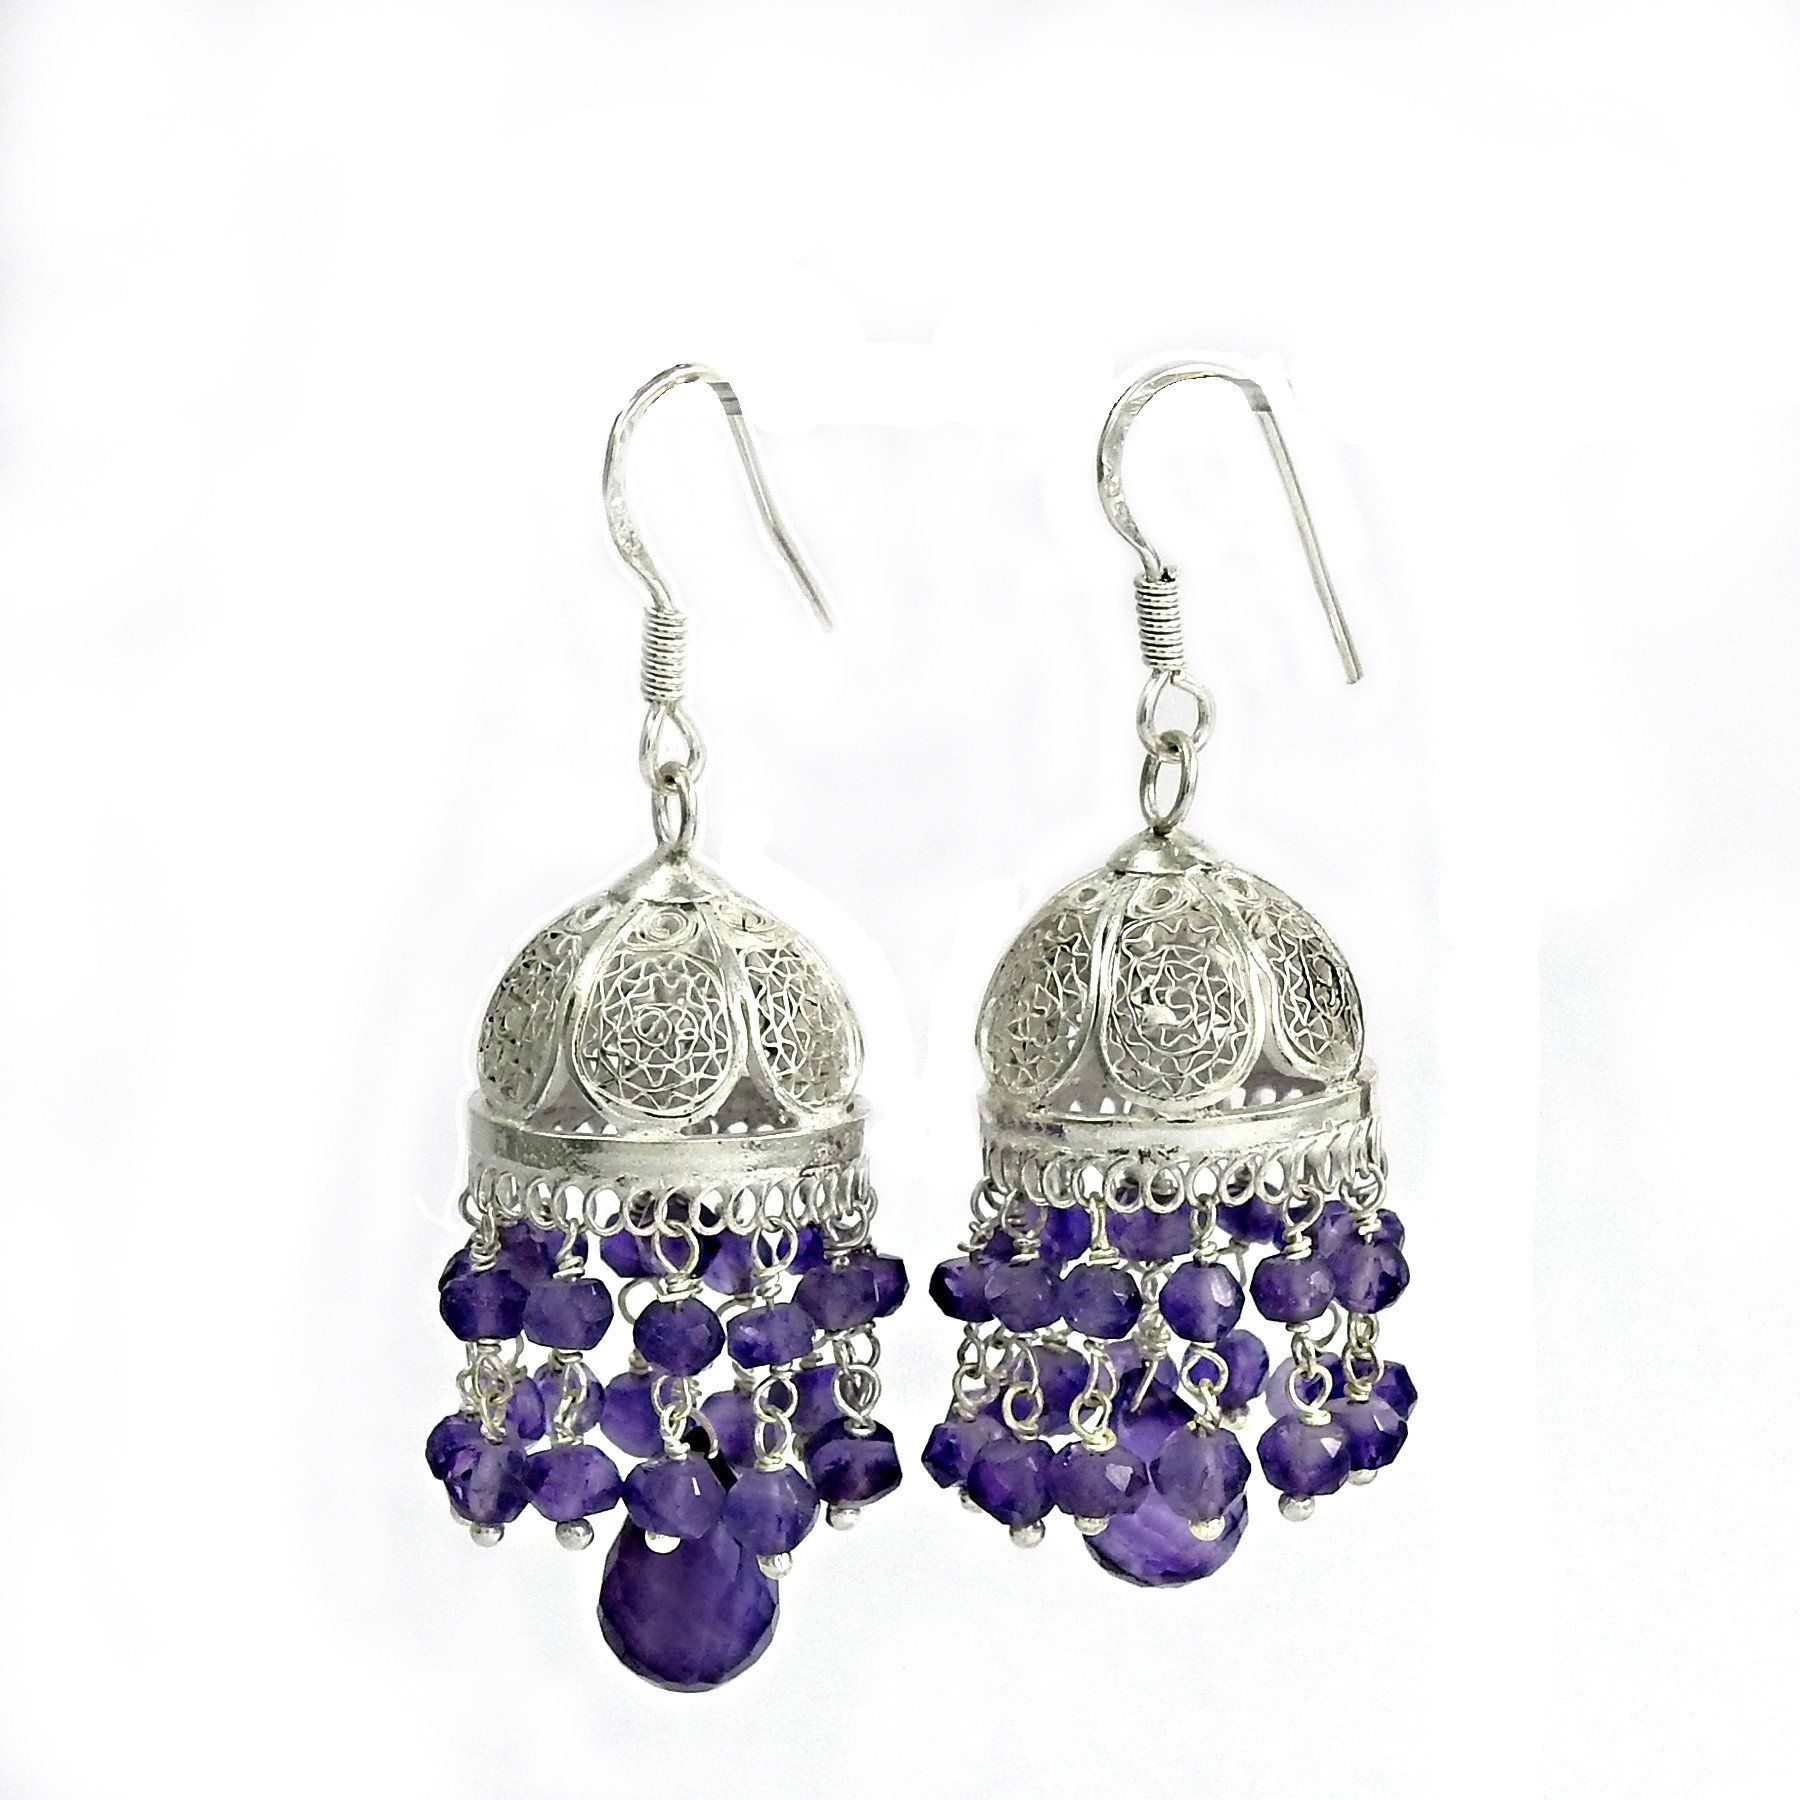 Authentic Handcrafted Miska Amethyst Silver Drop Earring